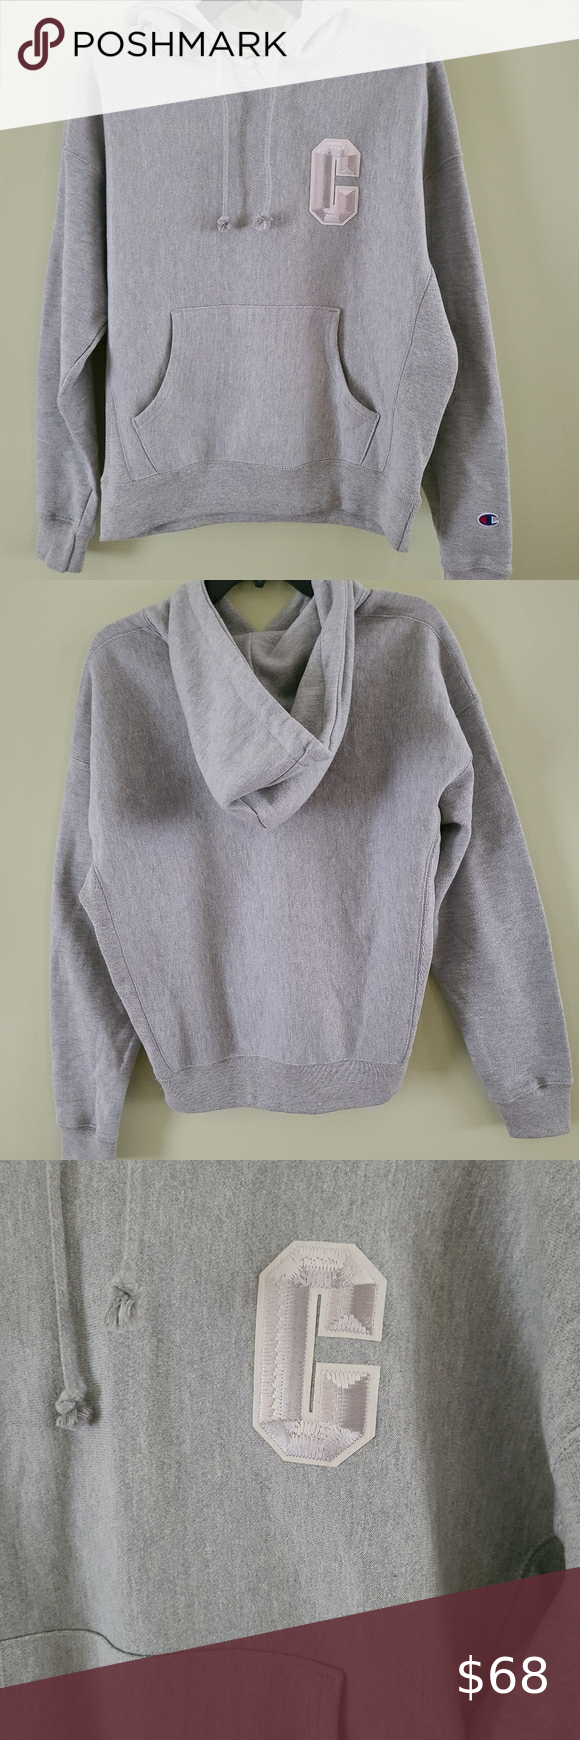 Champion Reverse Weave Hoodie Clothes Design Champion Reverse Weave Grey Champion Hoodie [ 1740 x 580 Pixel ]